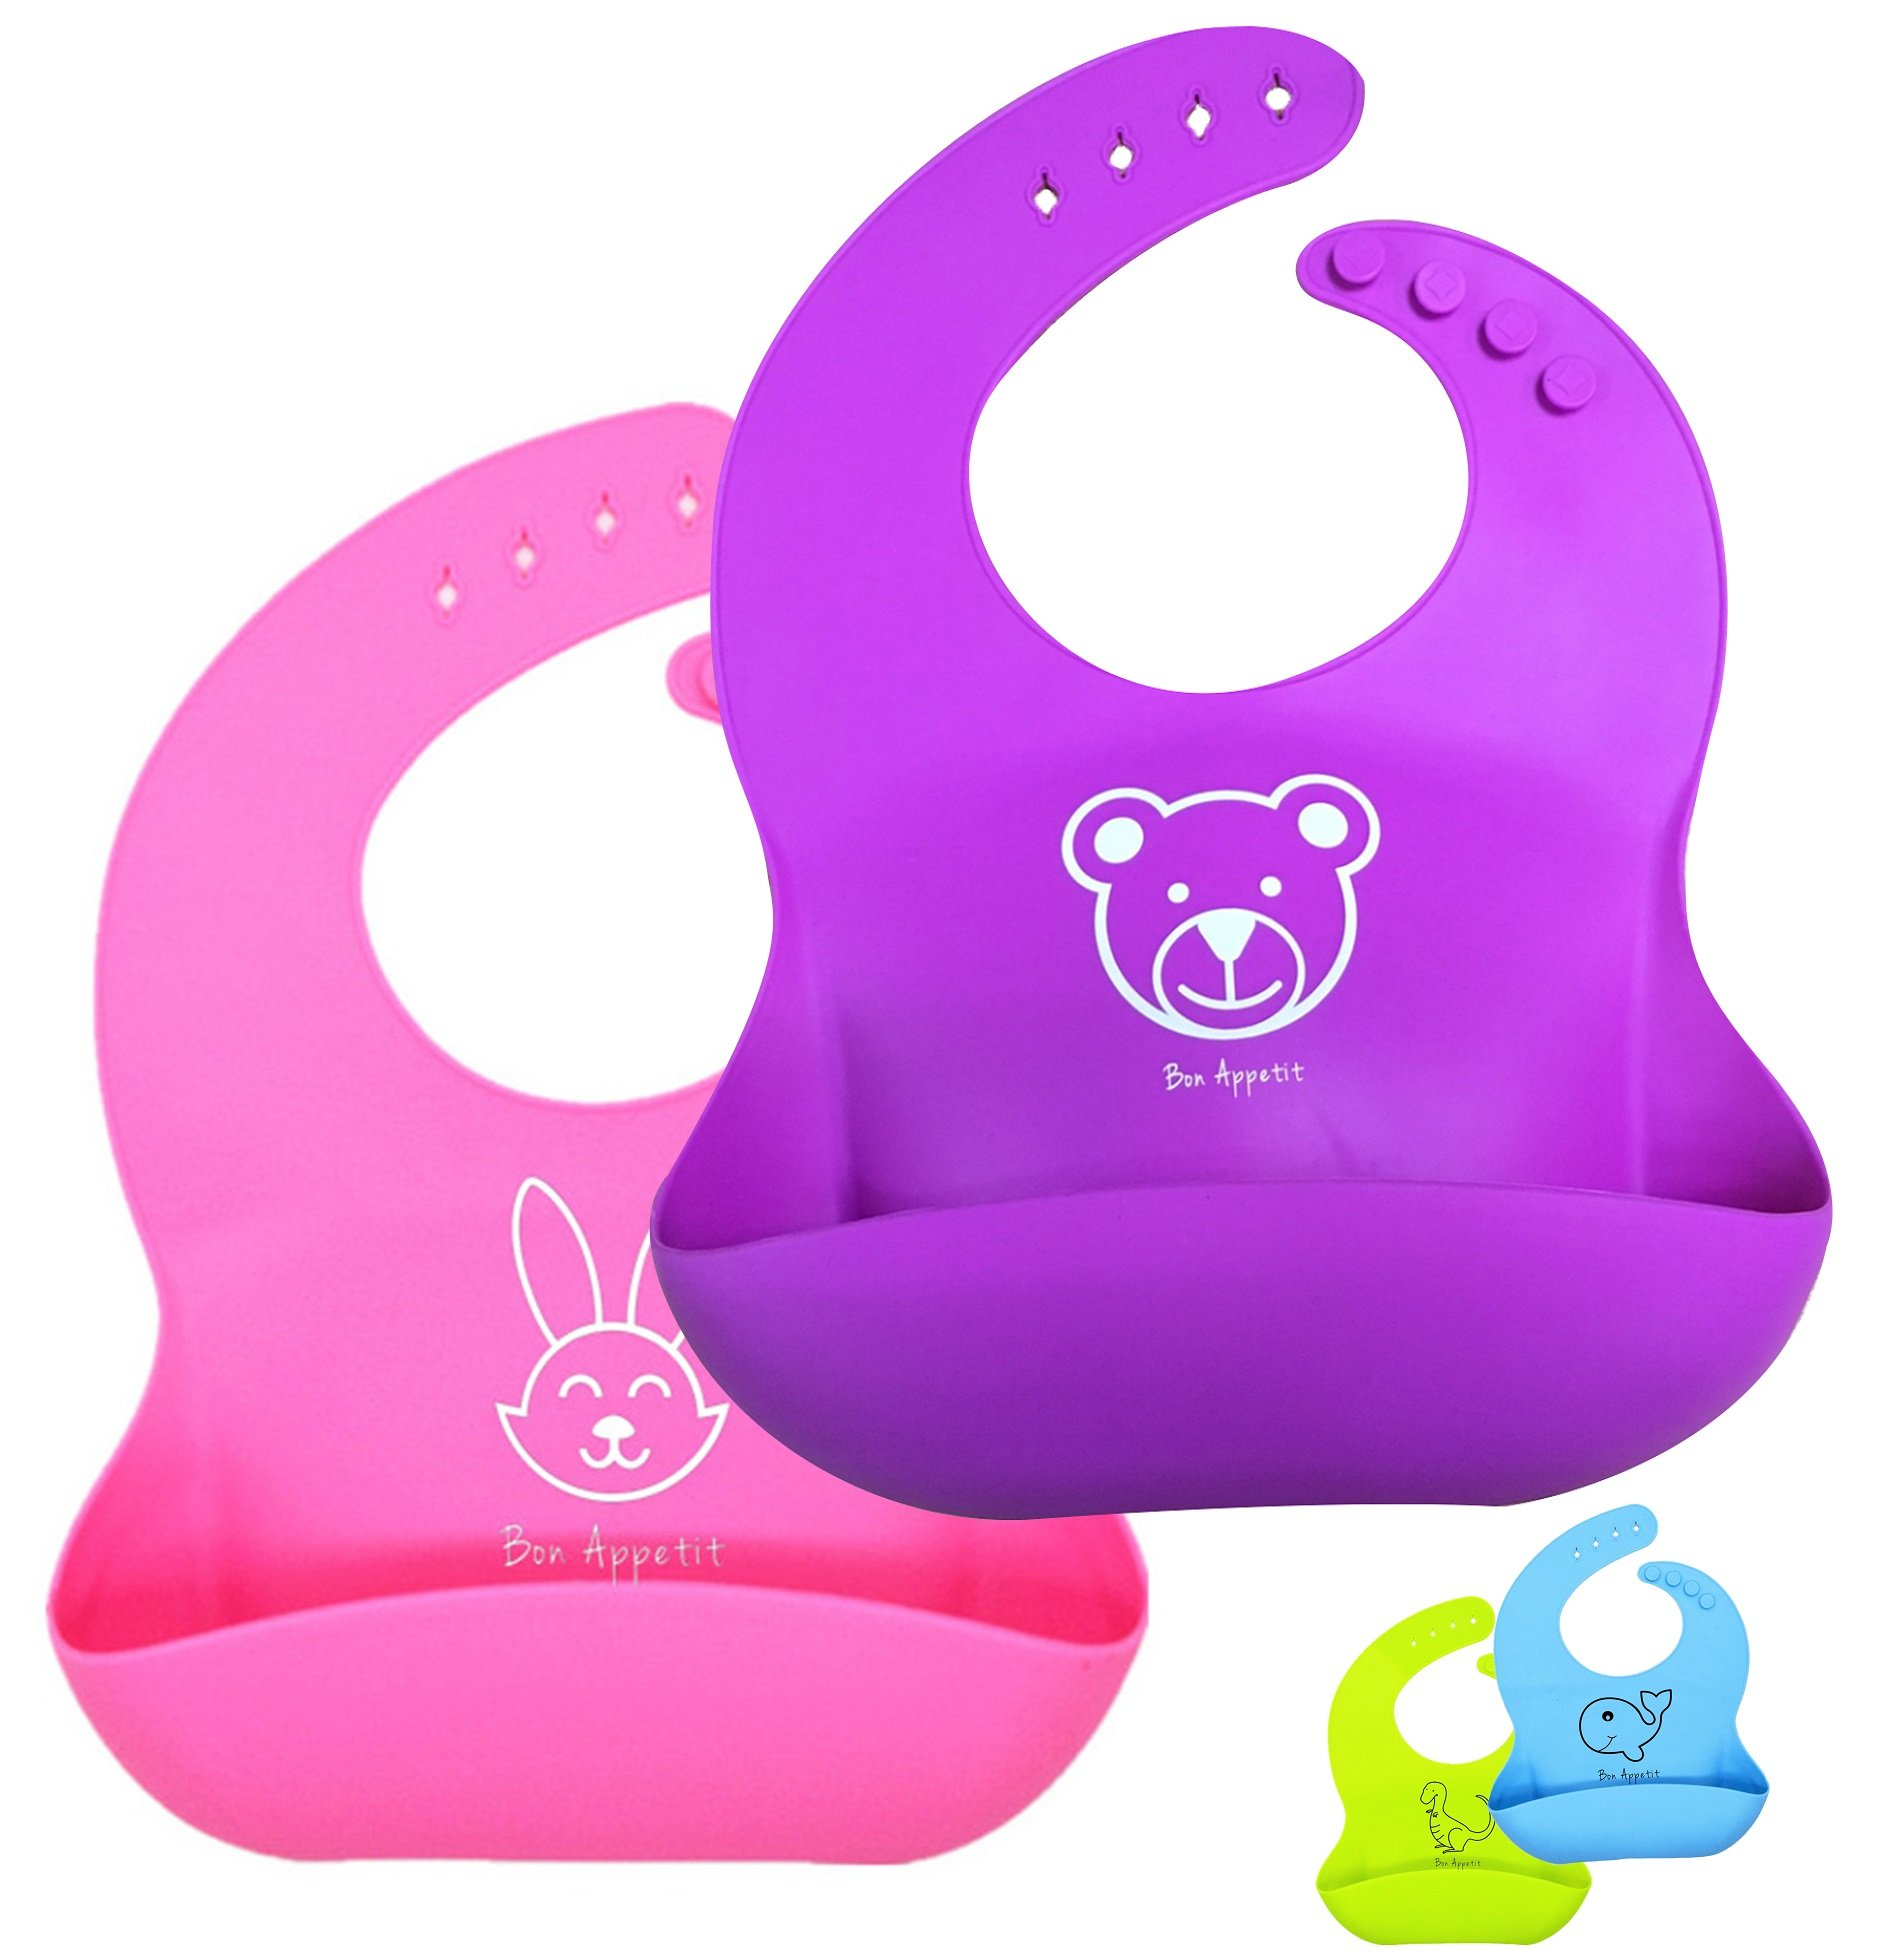 Soft Waterproof Silicone Baby Bib Easy Wipe - BPA Free - 100% Food Grade Silicone - Soft Comfortable Adjustable Collar - Foldable - 2 Pack Baby Bibs (Pink Purple) Friendly Animal Print Baby Bibs